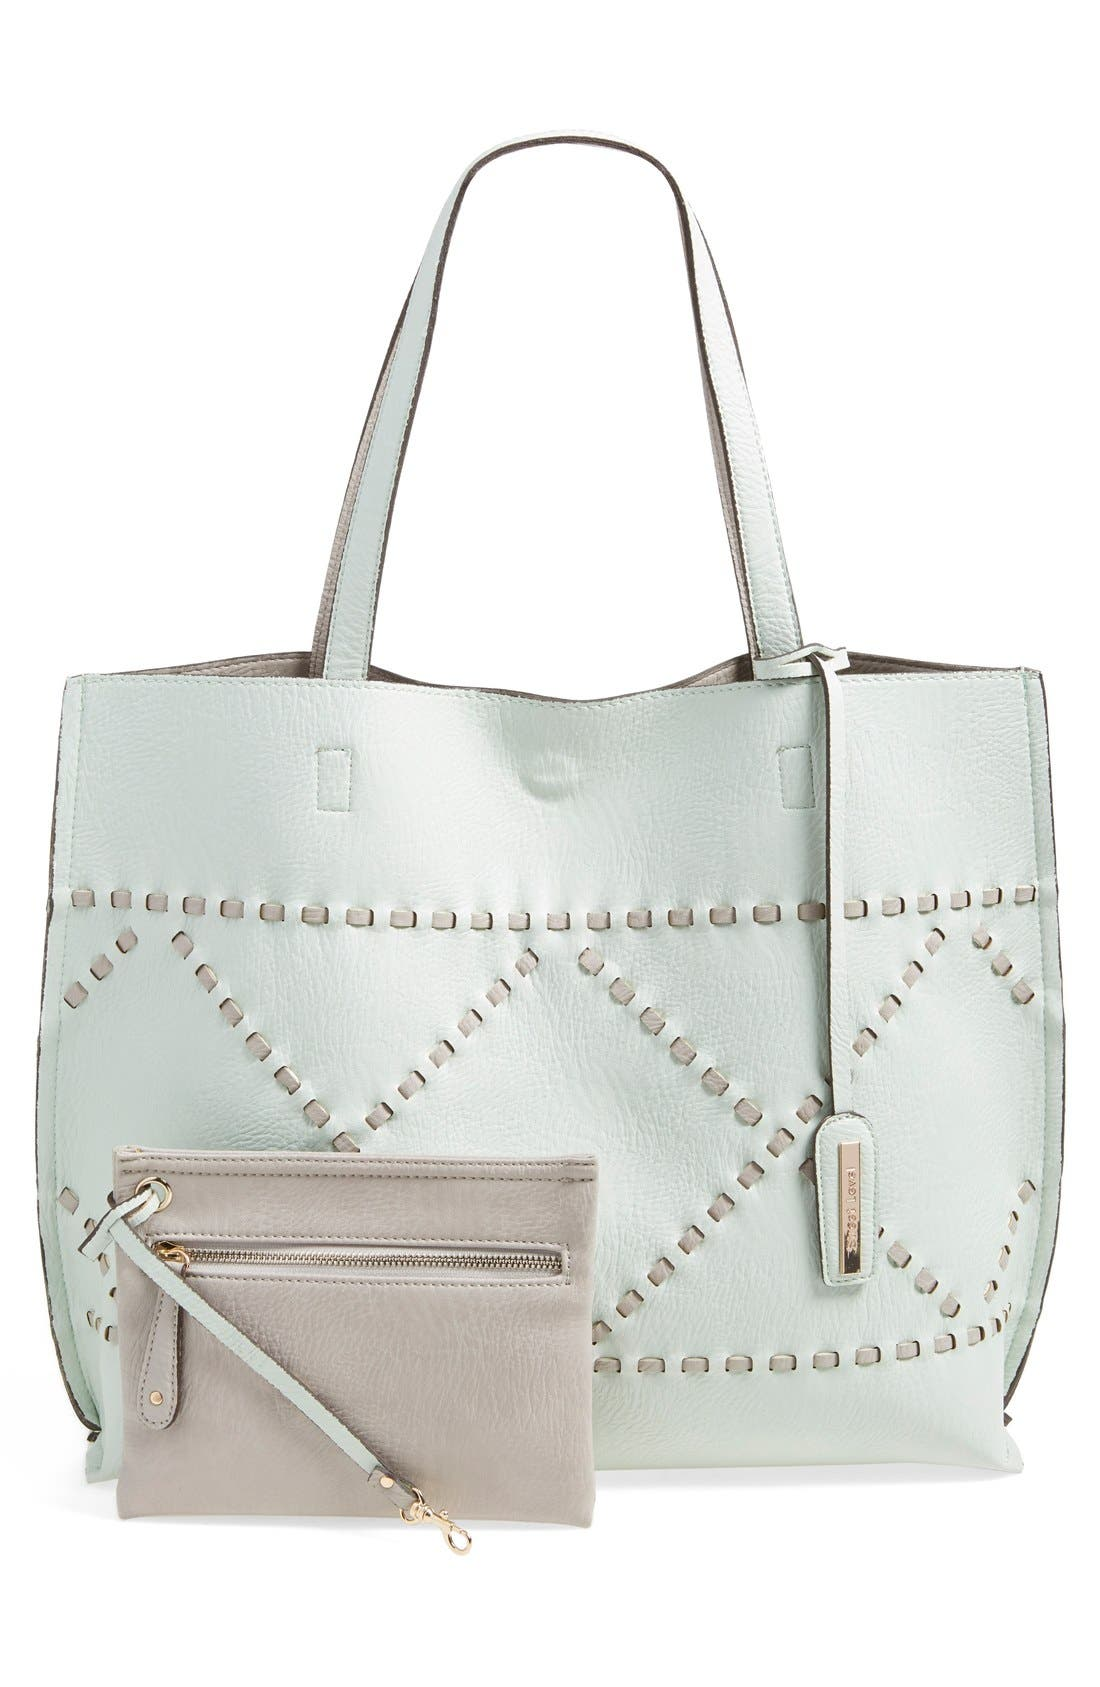 Main Image - Street Level Reversible Woven Faux Leather Tote